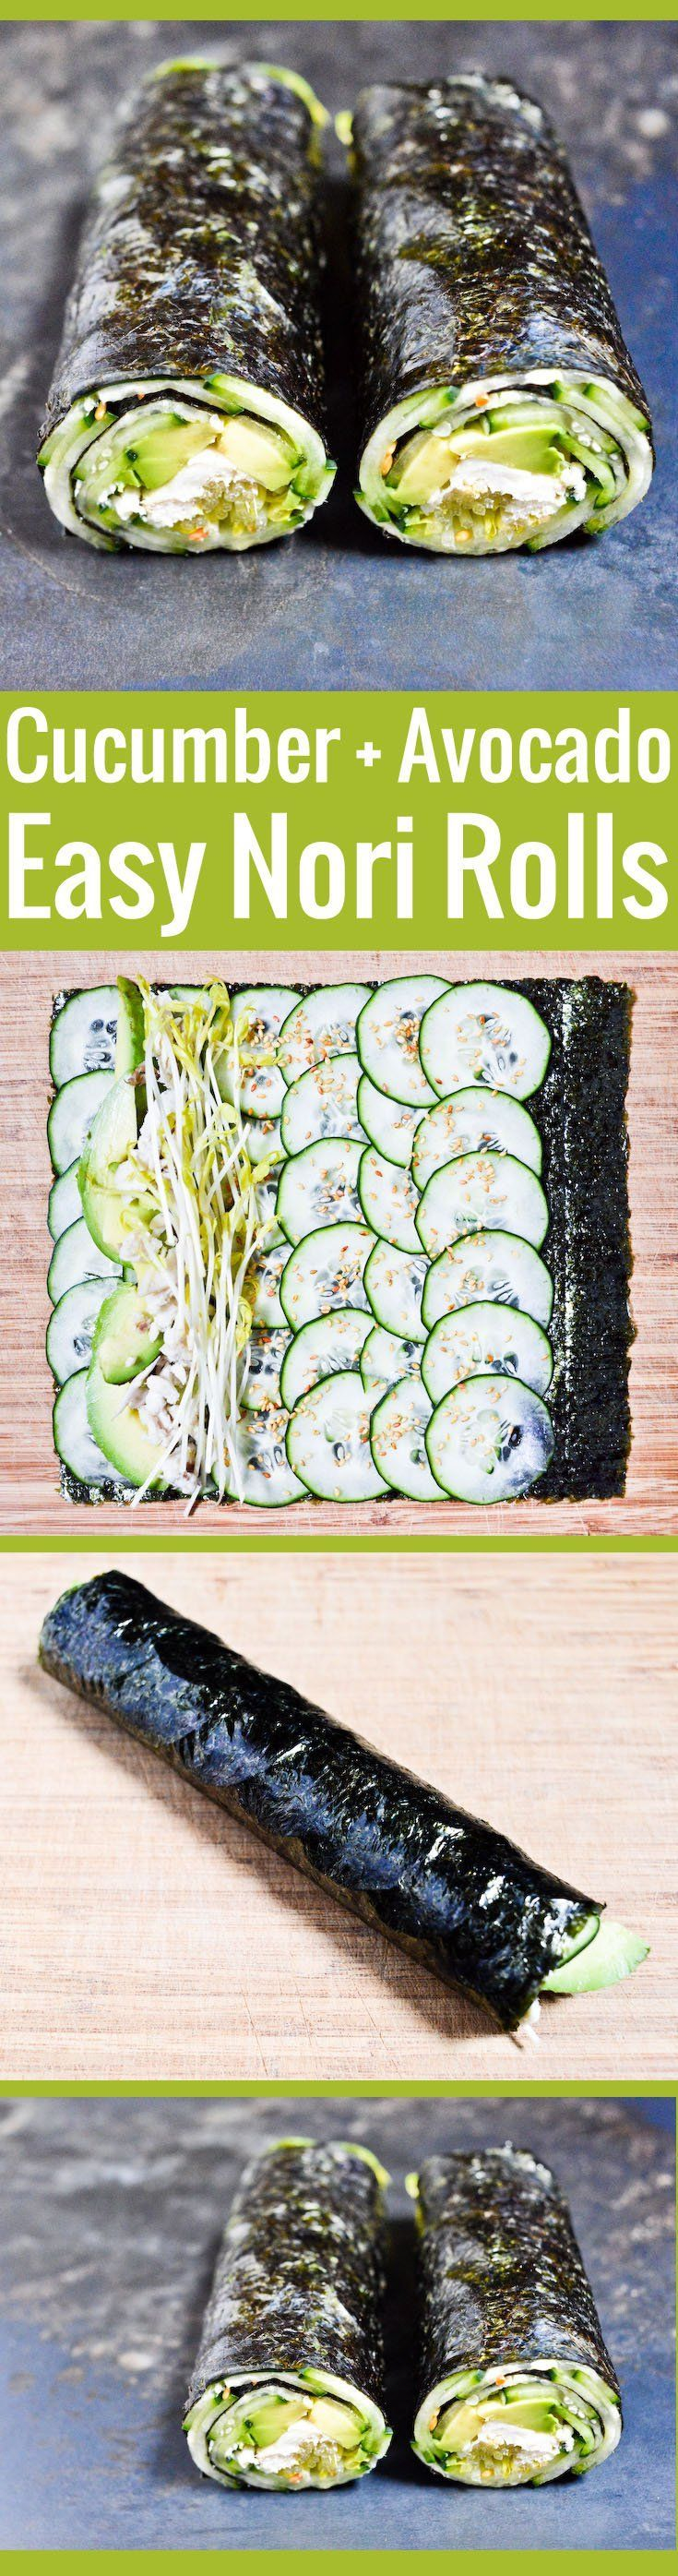 Maki-style nori roll, super easy to assemble, and a great home for all kinds of ingredients. The perfect quick grain-free lunch! by chocolateandzucchini #Nori_Roll #Cucumber #Avocado  * chicken can be a substitute for tofu, if your anti-soy and not vegan